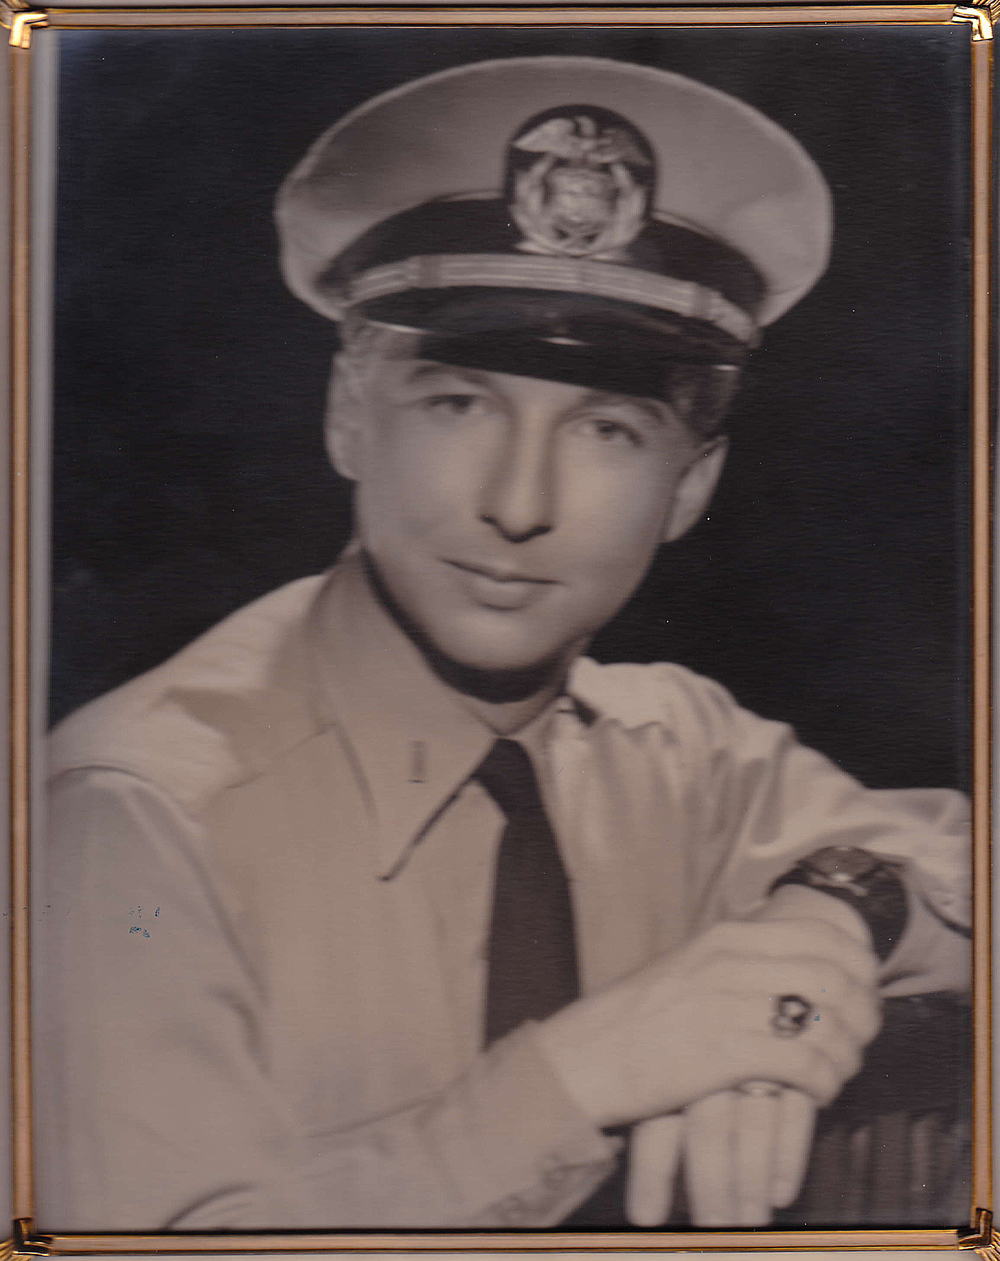 Capt. Metcalf (Gramps to me)